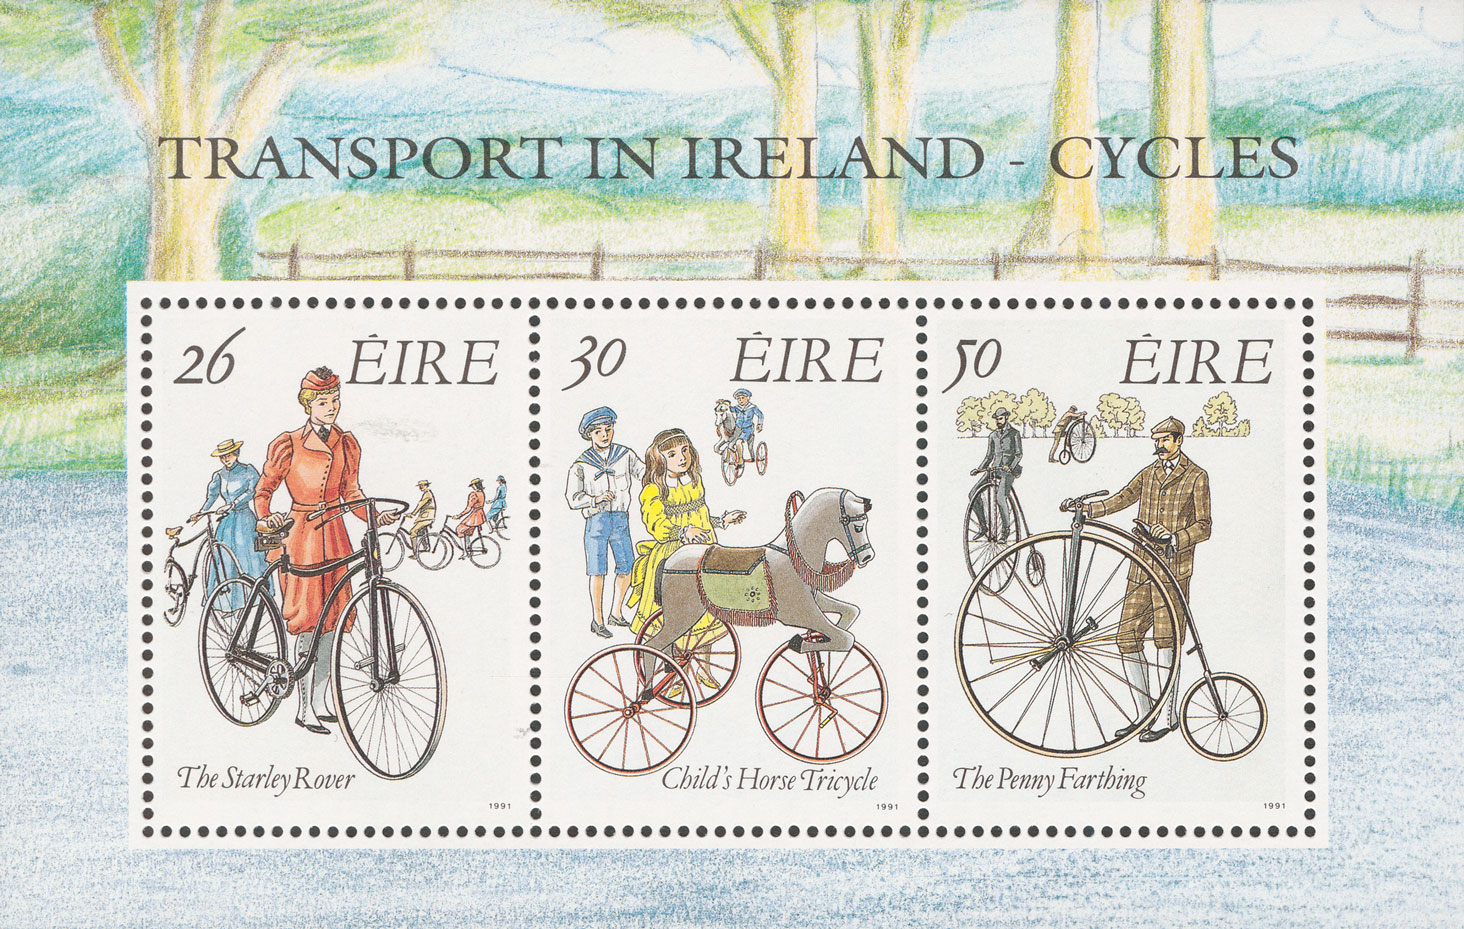 A miniature sheet with three stamps featuring three types of bikes.